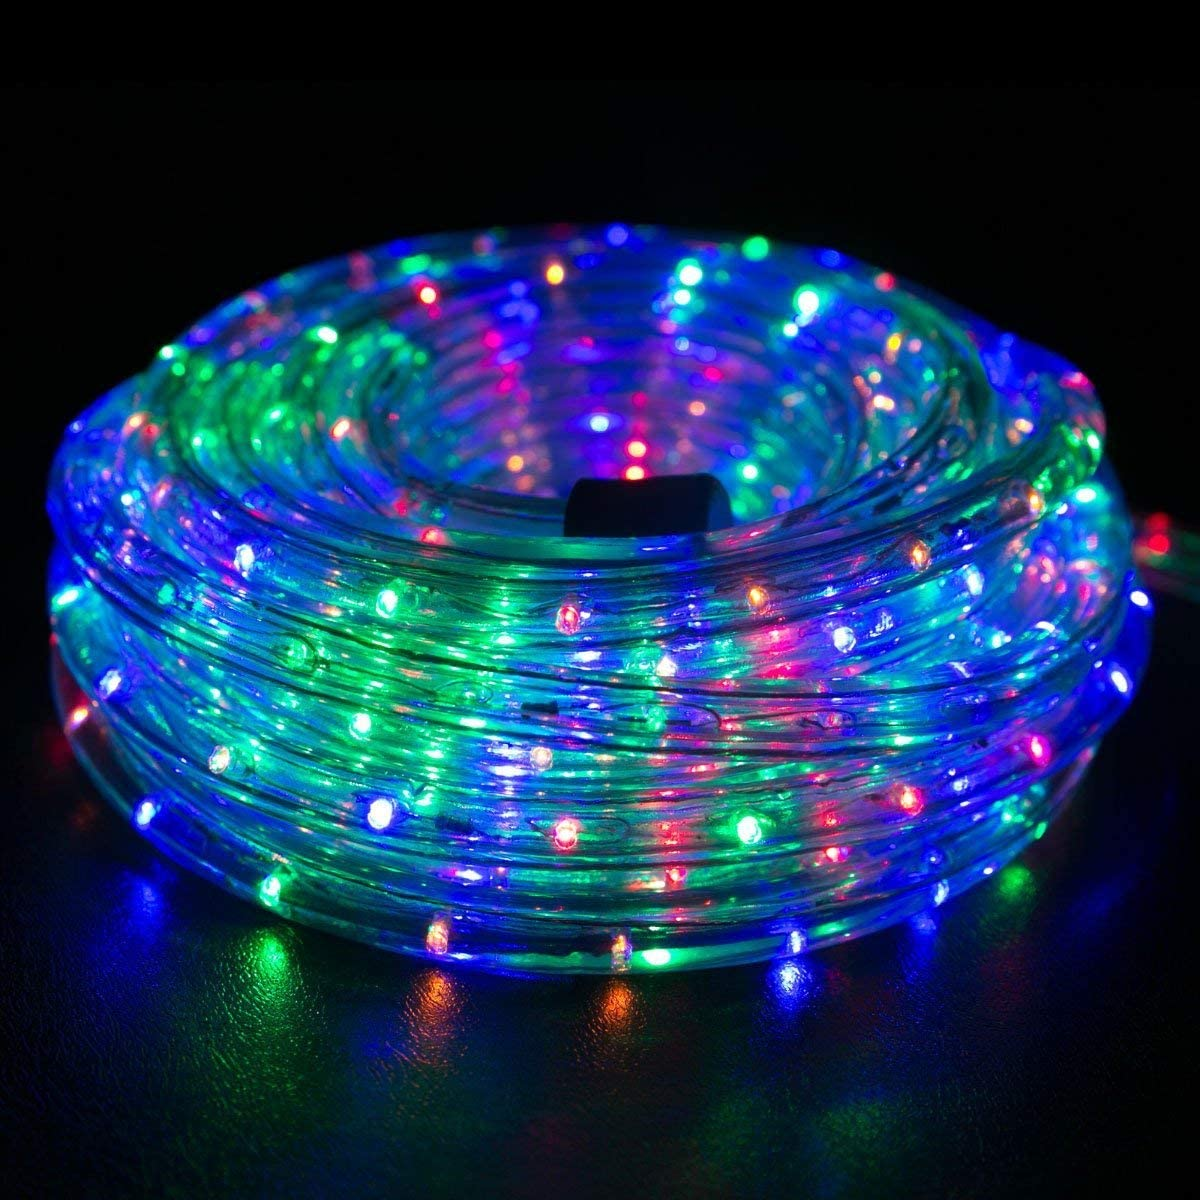 Amazon Com Wyzworks 300 Feet Multi Rgb Led Rope Lights Flexible 2 Wire Accent Holiday Christmas Party Decoration Lighting Ul Certified Garden Outdoor